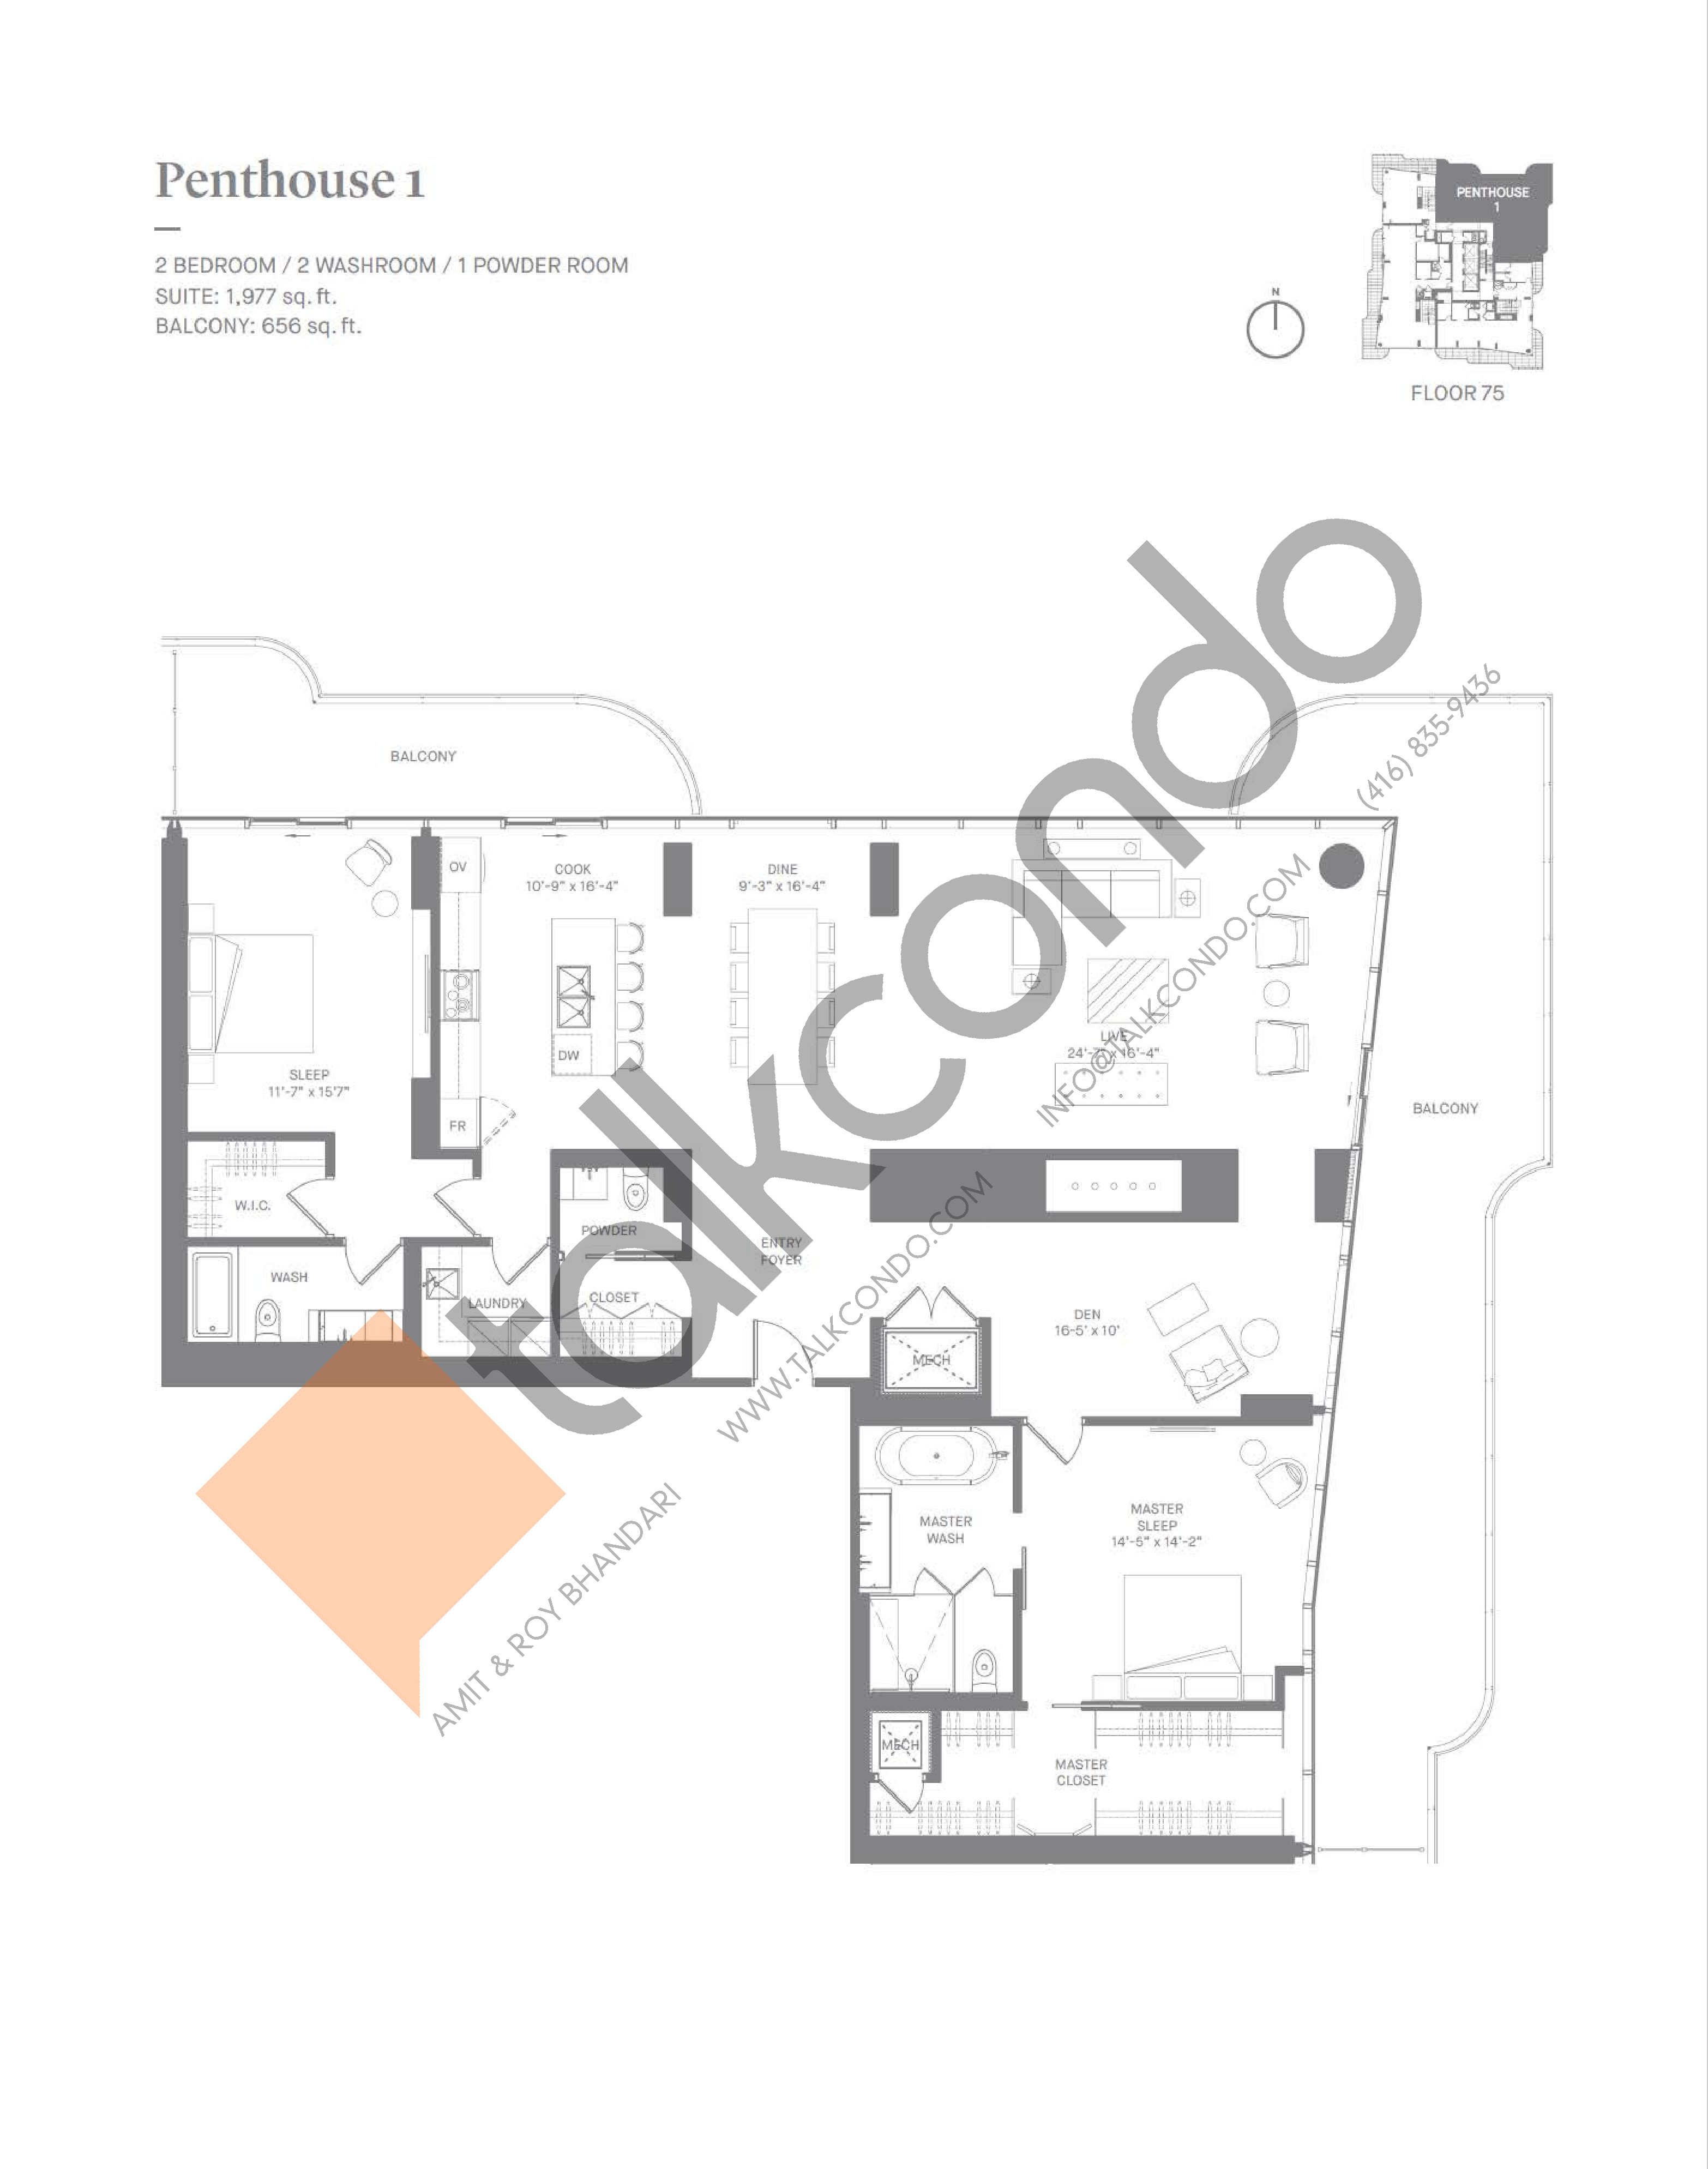 Penthouse 1 Floor Plan at One Bloor Condos - 1977 sq.ft